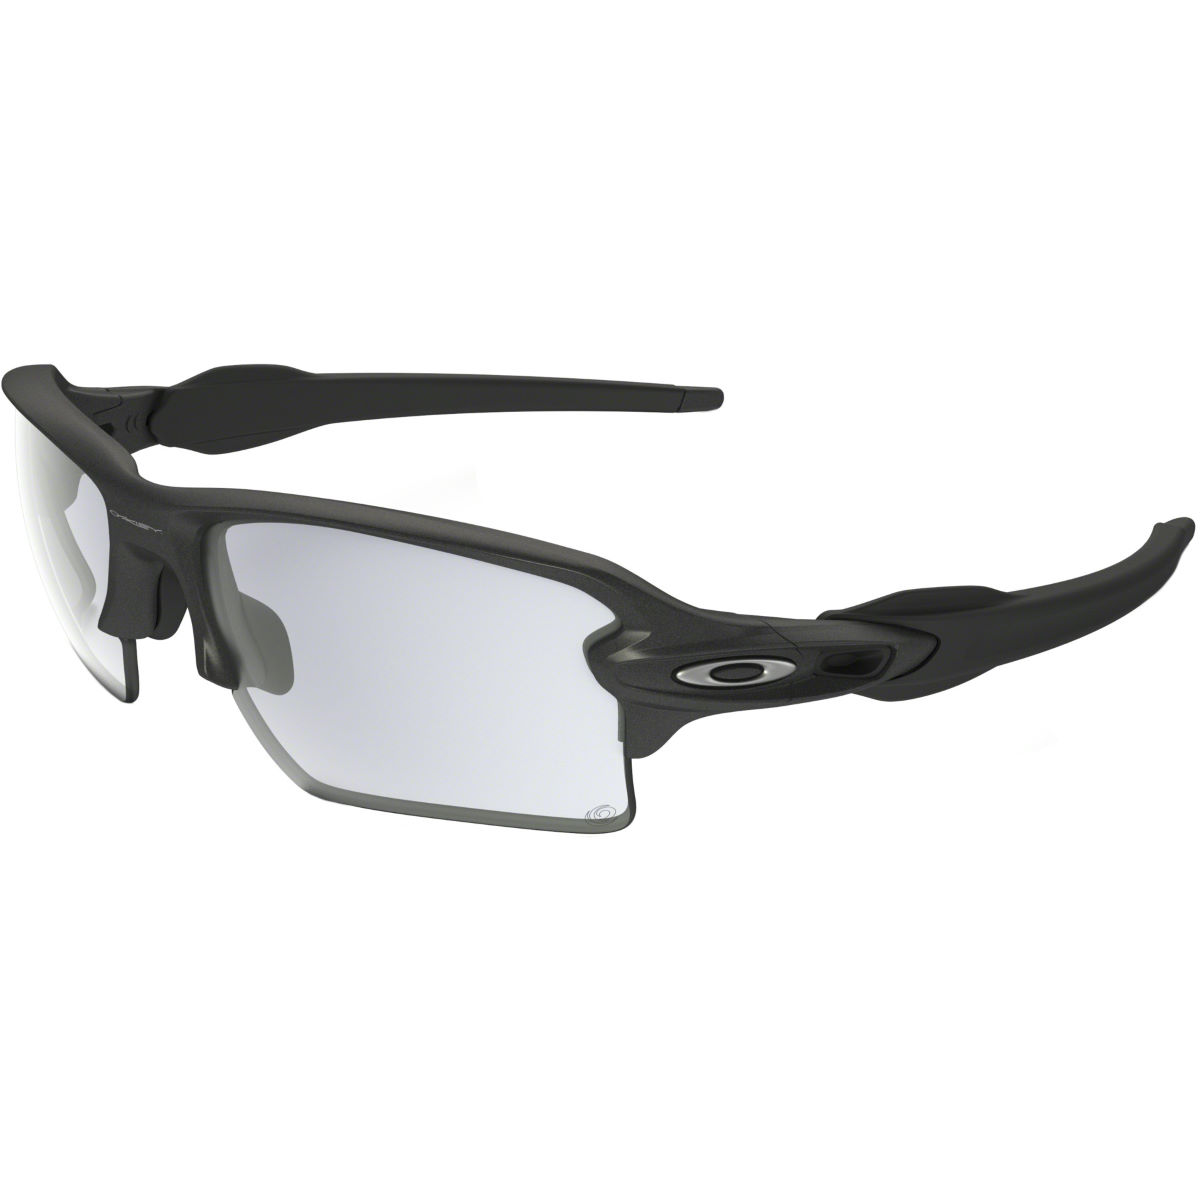 Oakley Flak 2.0 XL Photochromic Sunglasses - One Size Grey